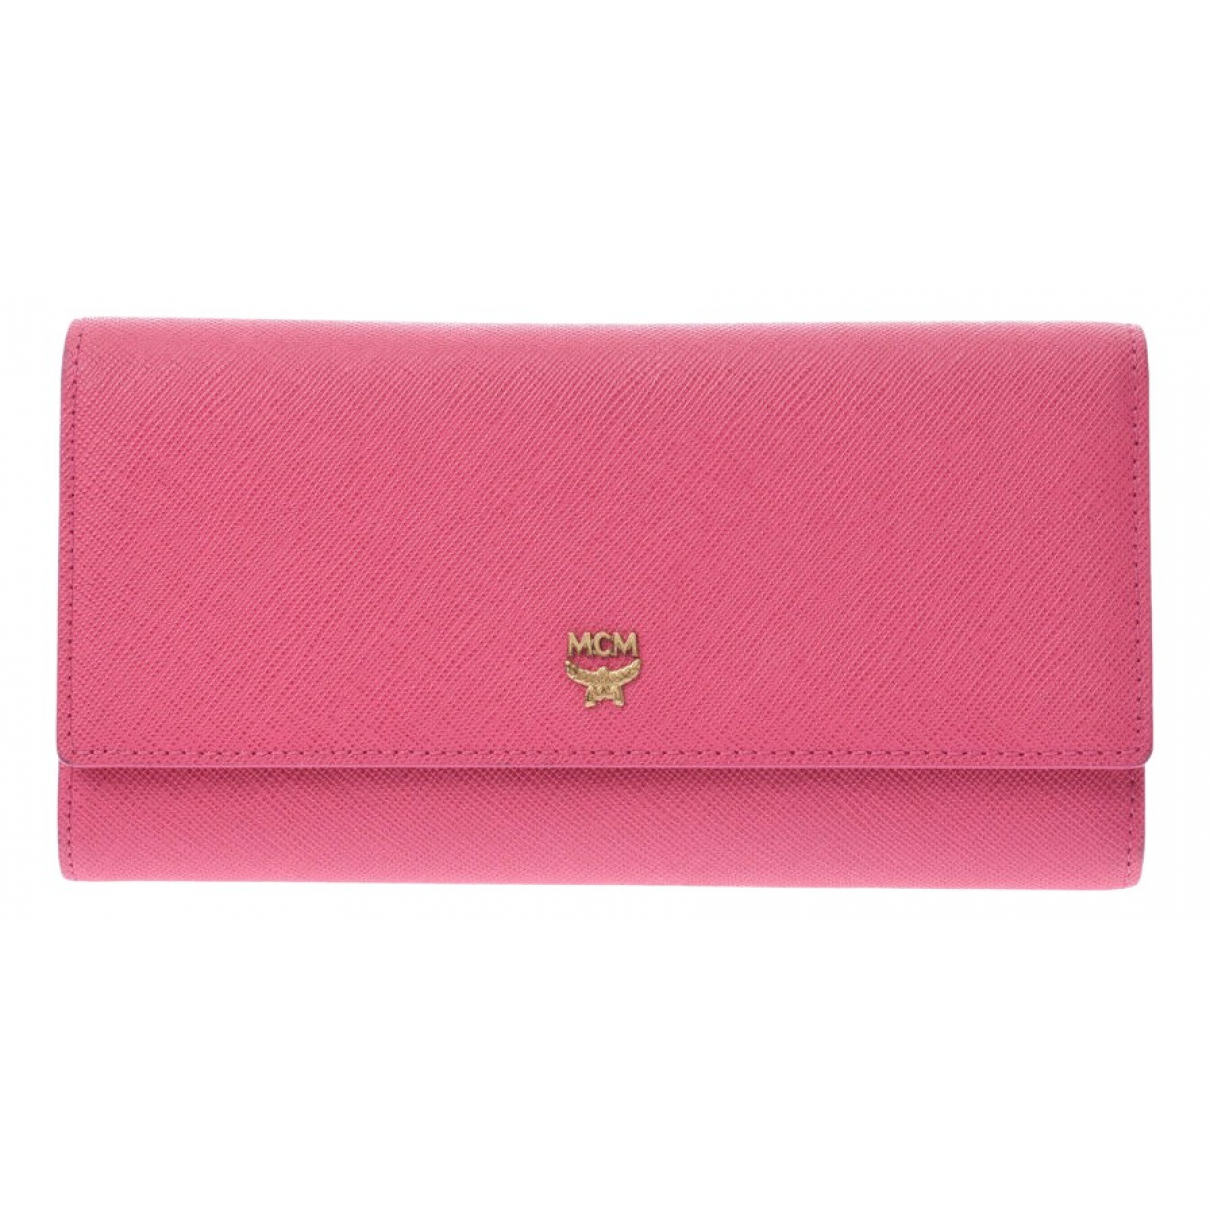 Mcm \N Pink Leather wallet for Women \N